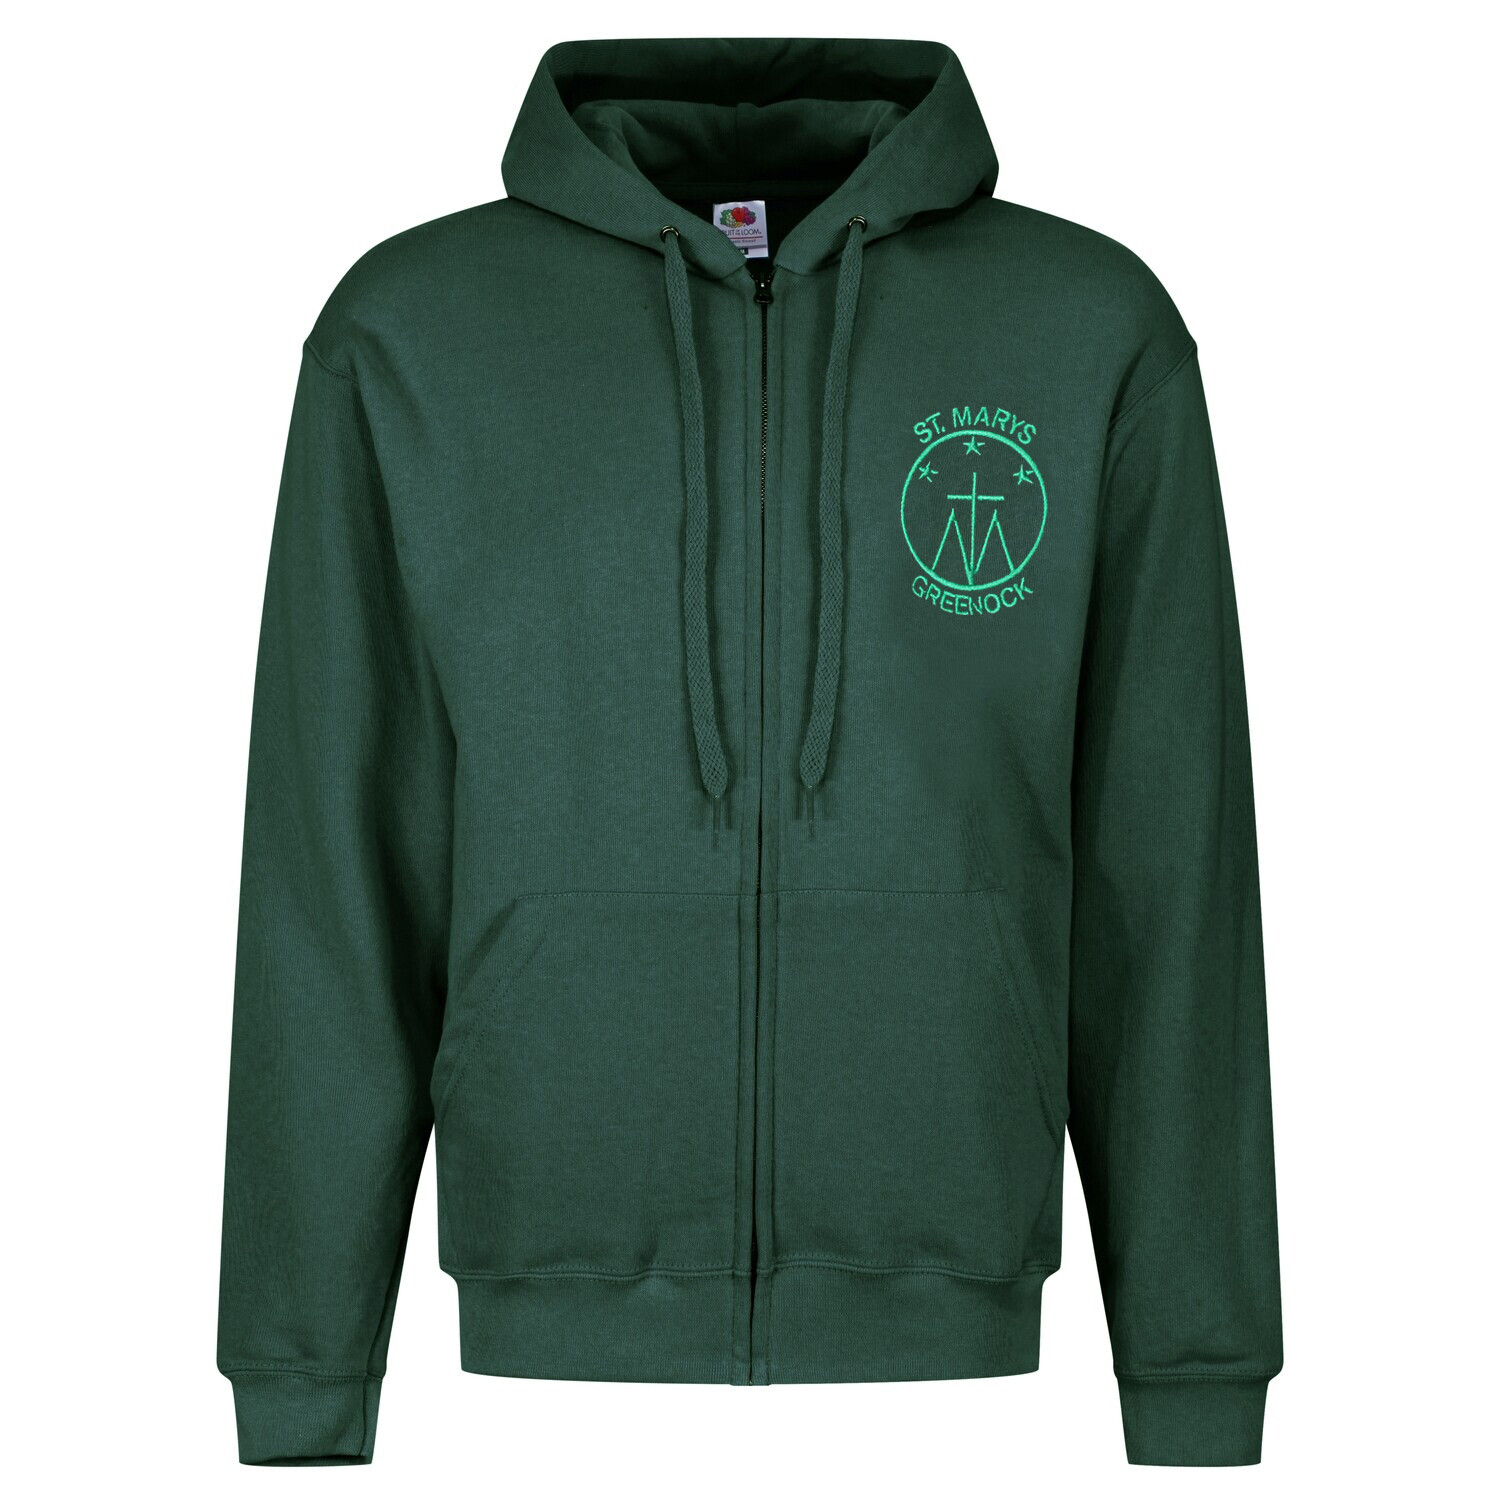 St Mary's Primary Staff ZIPPER Hoody (Unisex) (RCSGD58)